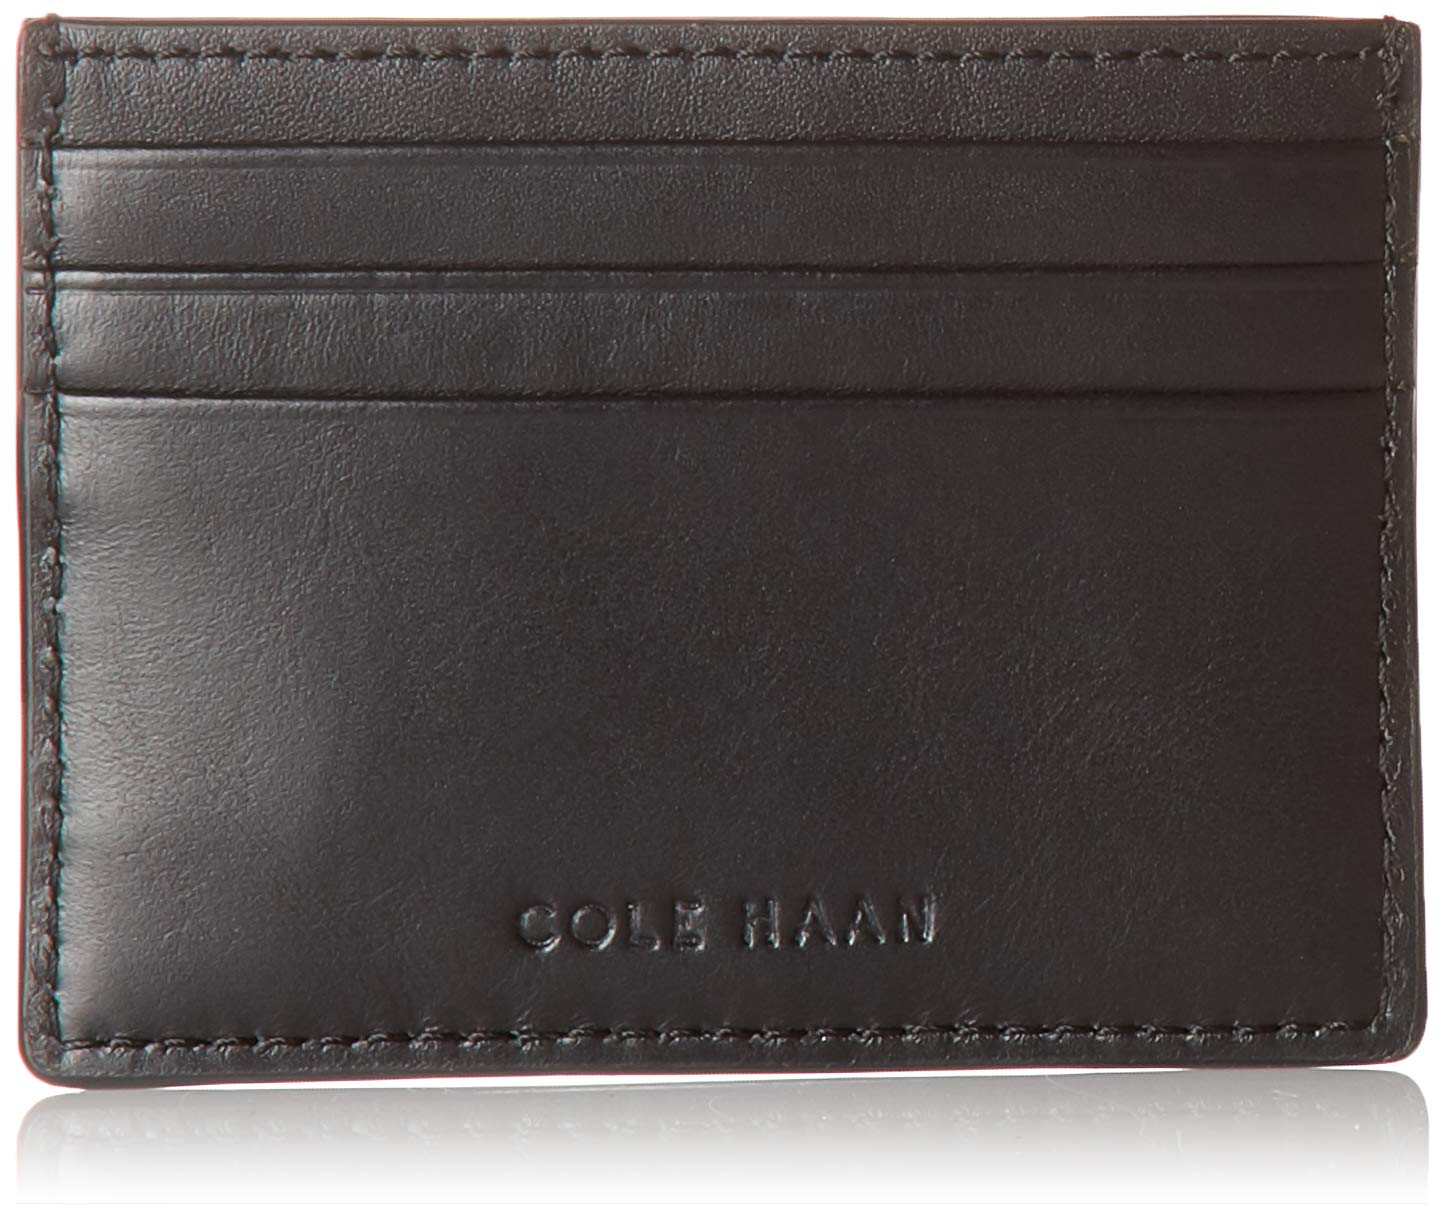 Cole Haan Women's Kaylee Leather Card Case, black by Cole Haan